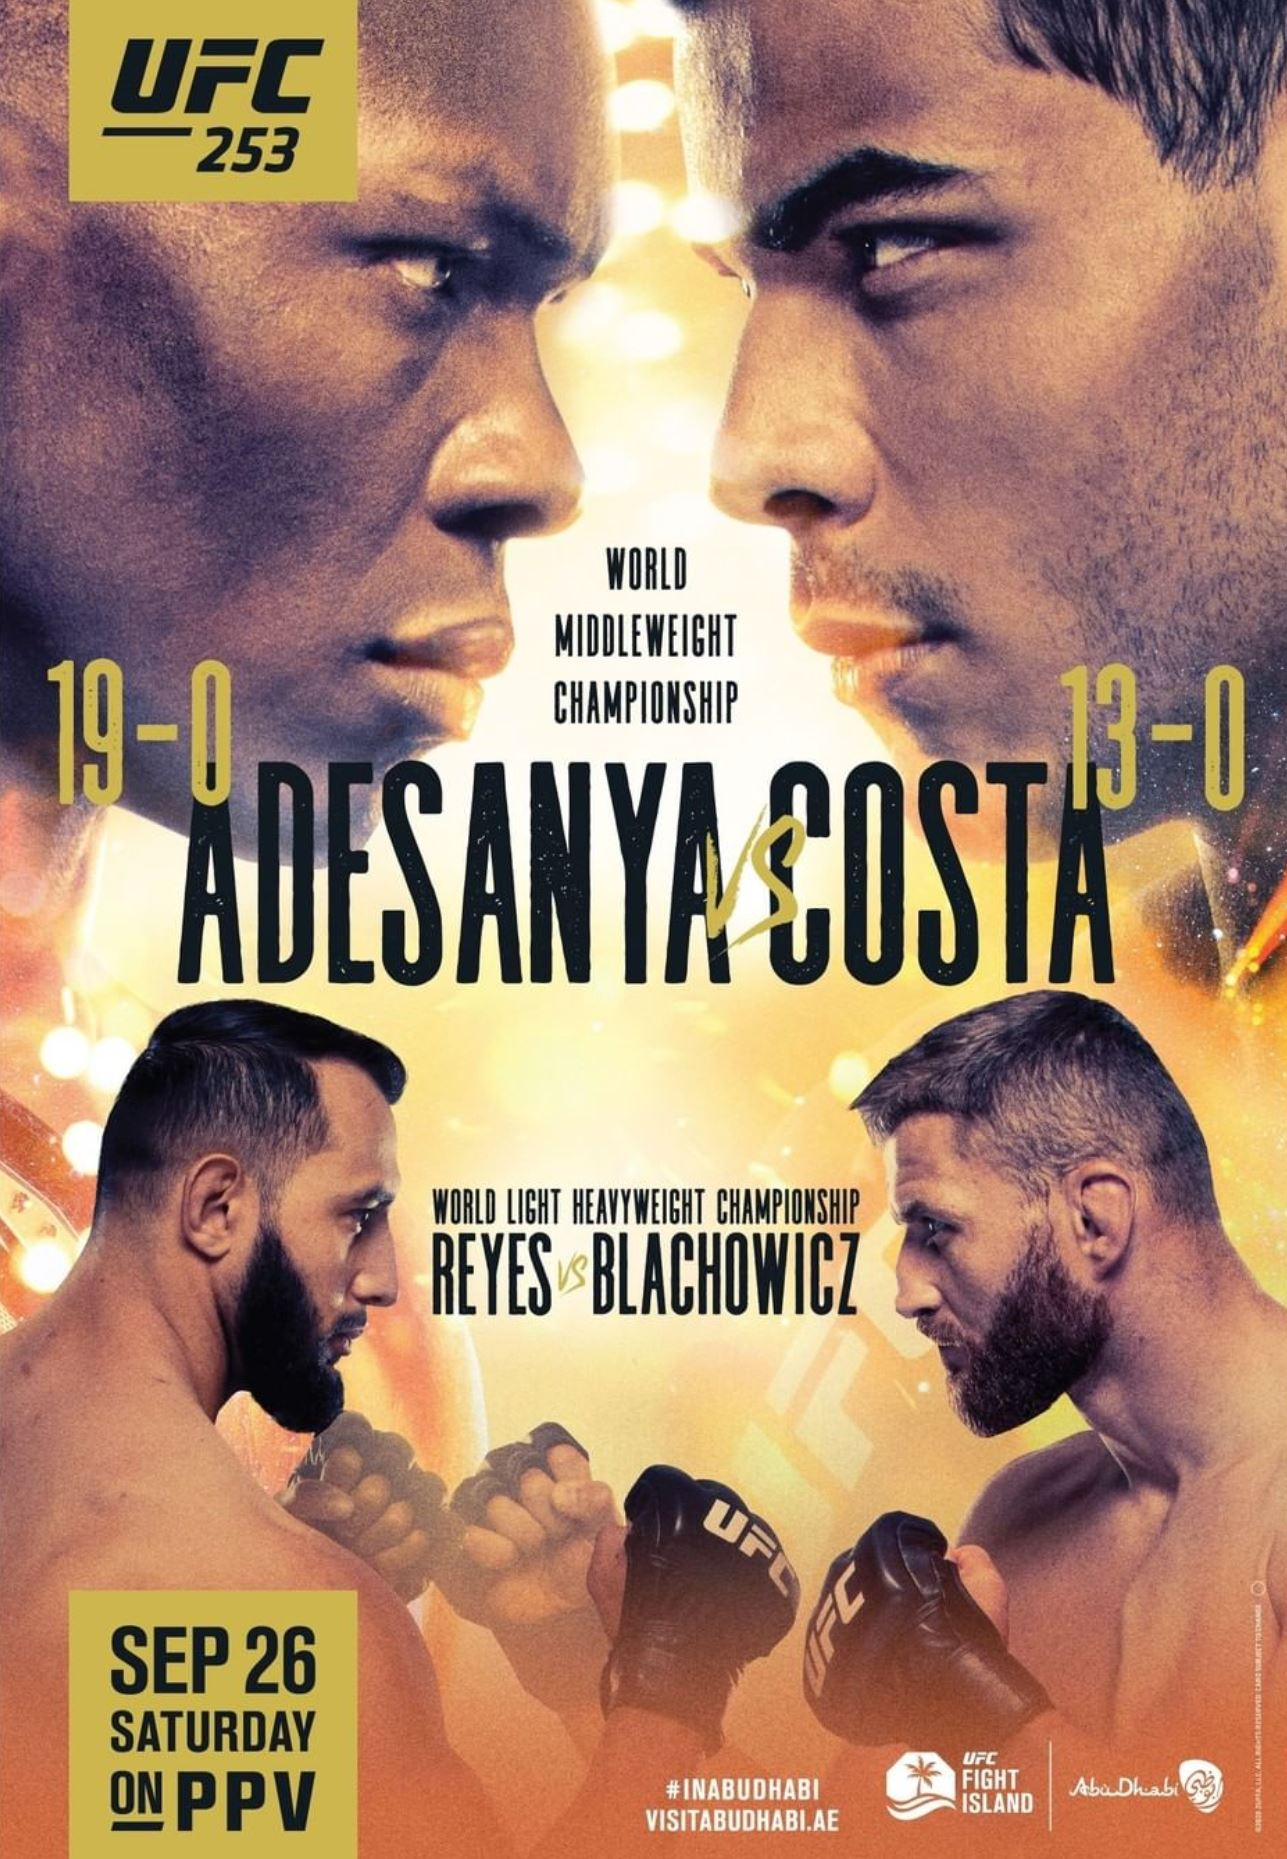 UFC 253 results poster